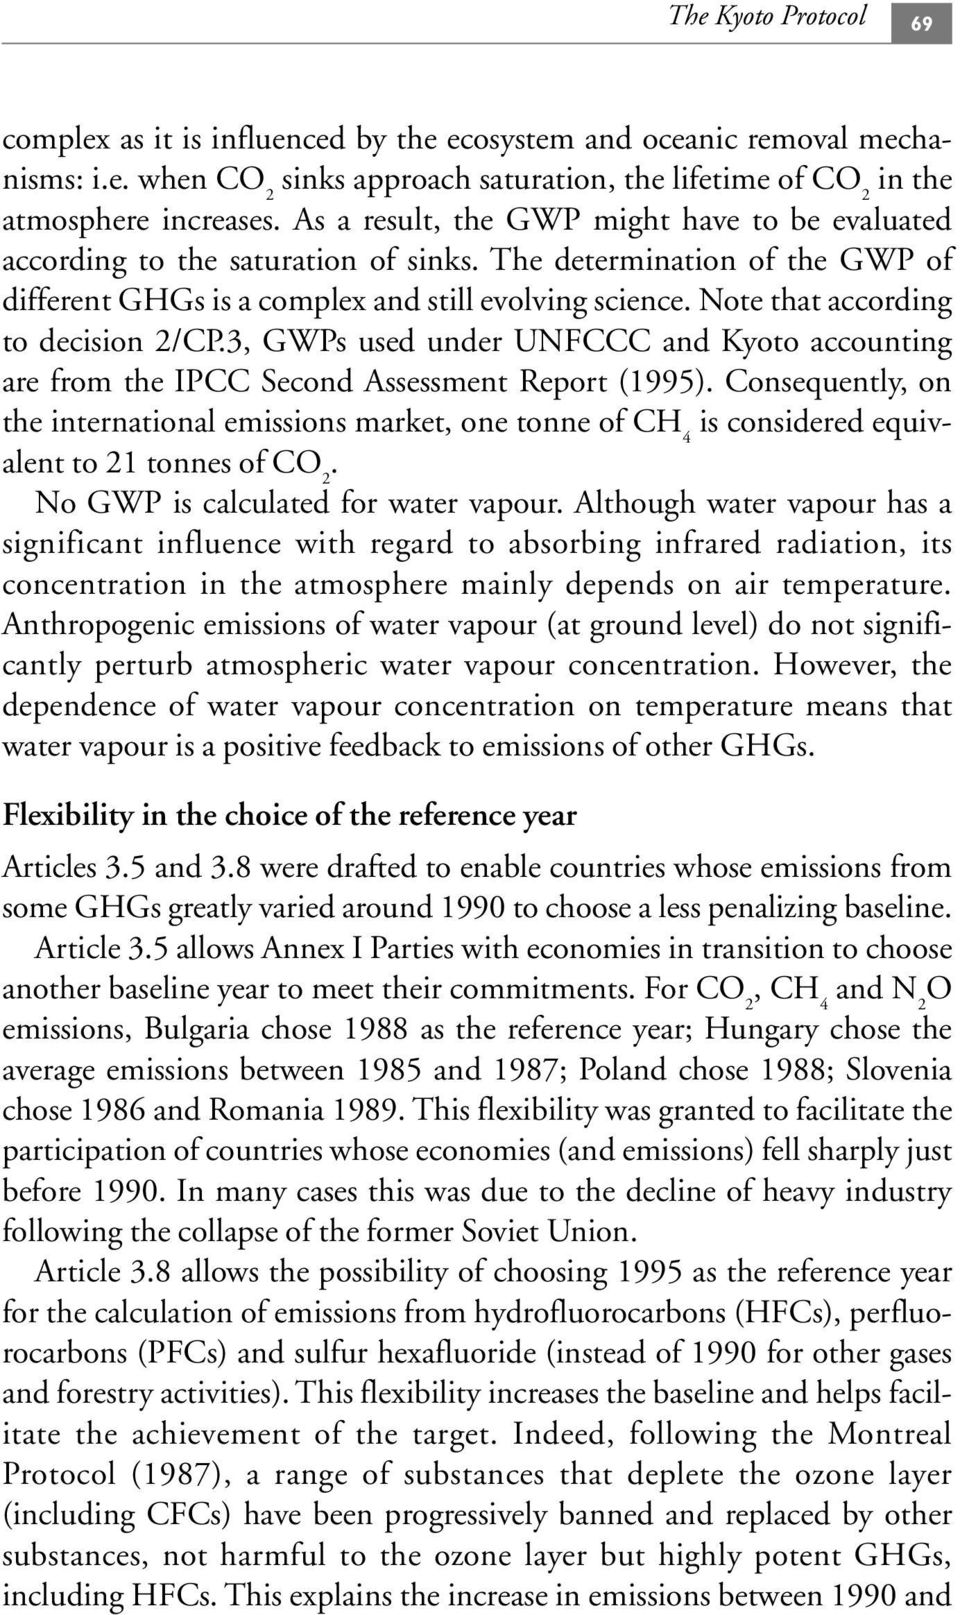 Note that according to decision 2/CP.3, GWPs used under UNFCCC and Kyoto accounting are from the IPCC Second Assessment Report (1995).